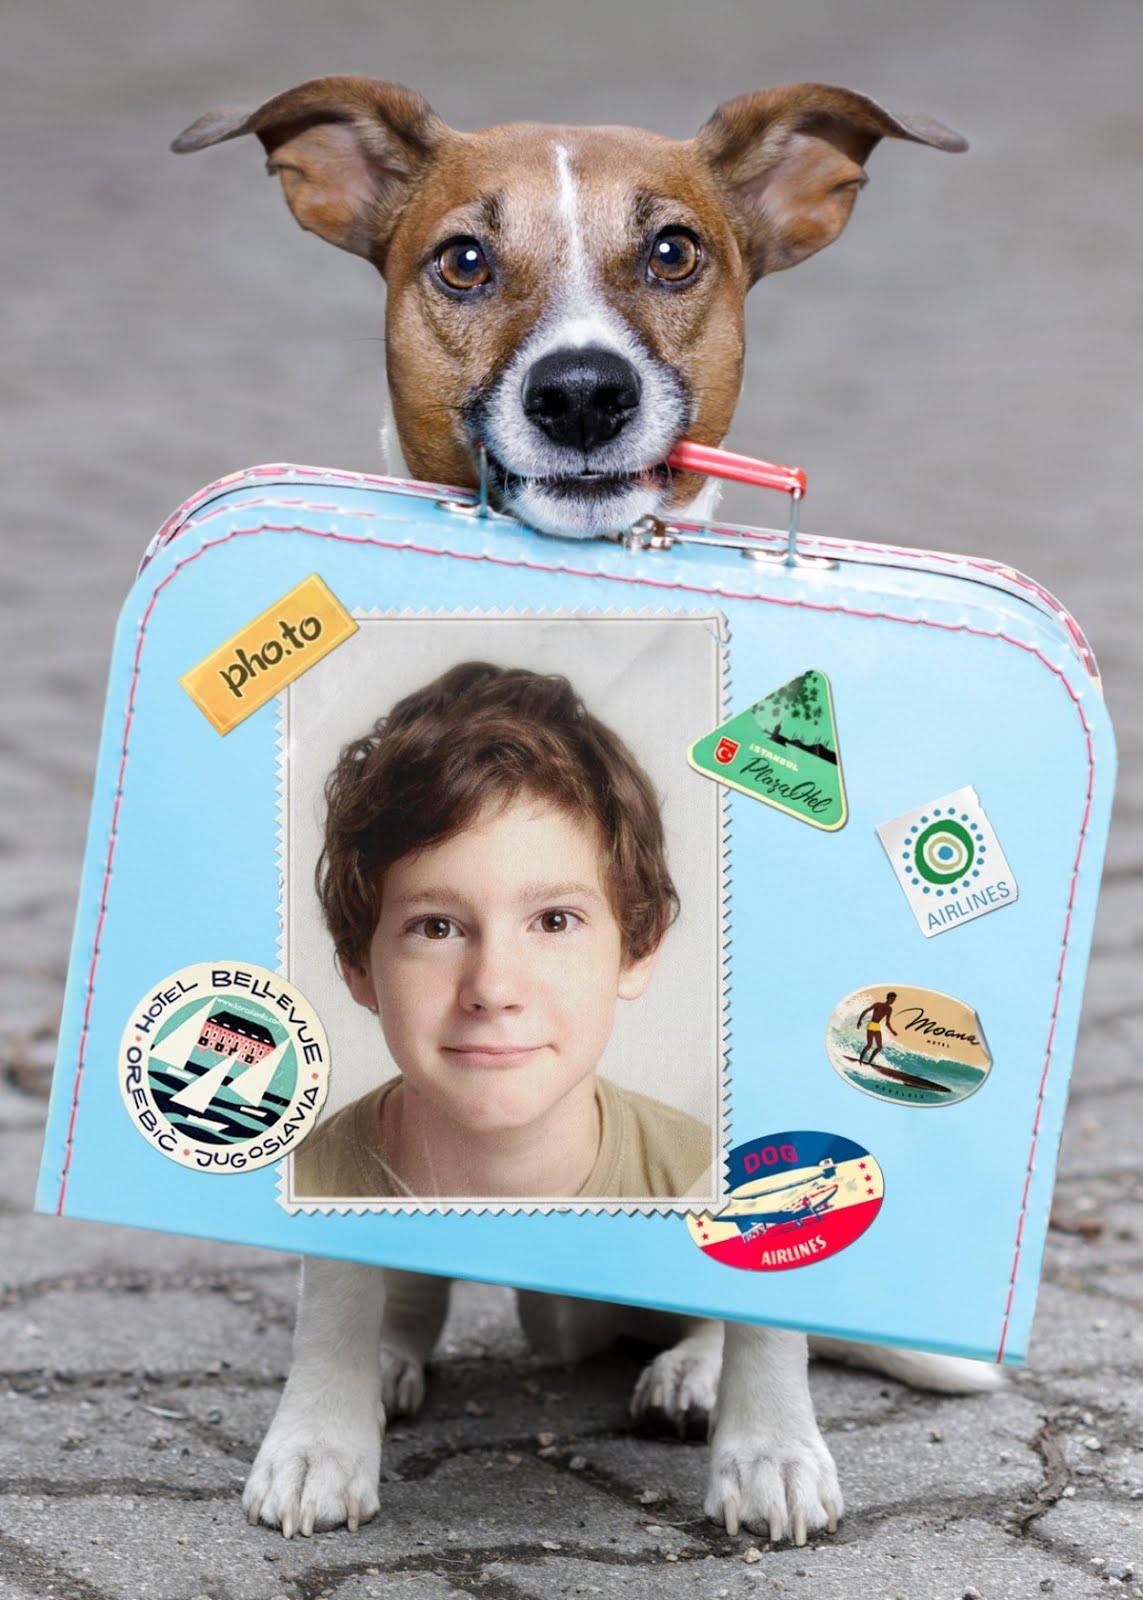 Photo collage with a dog, traveling suitcase and a young boy